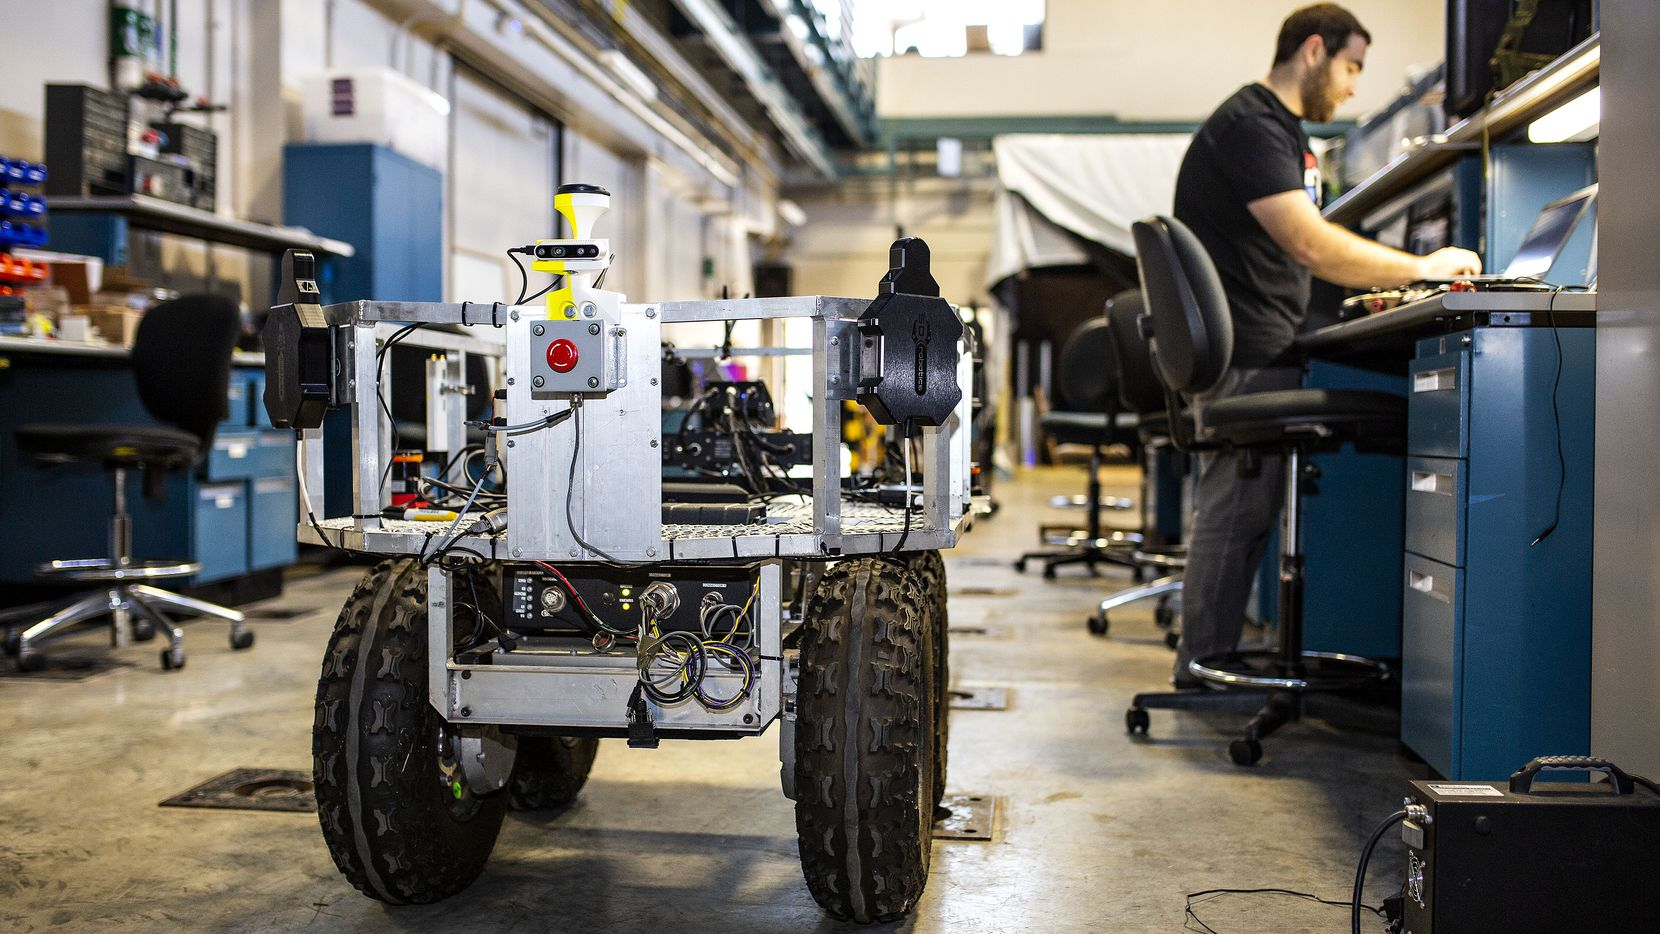 The U.S. Army Futures Command sent a vehicle to the Nuclear and Applied Robotics Group lab at the University of Texas for the team to develop it into a semi-autonomous vehicle that will be able to help transport equipment and do other dangerous tasks that are currently being performed by soldiers.